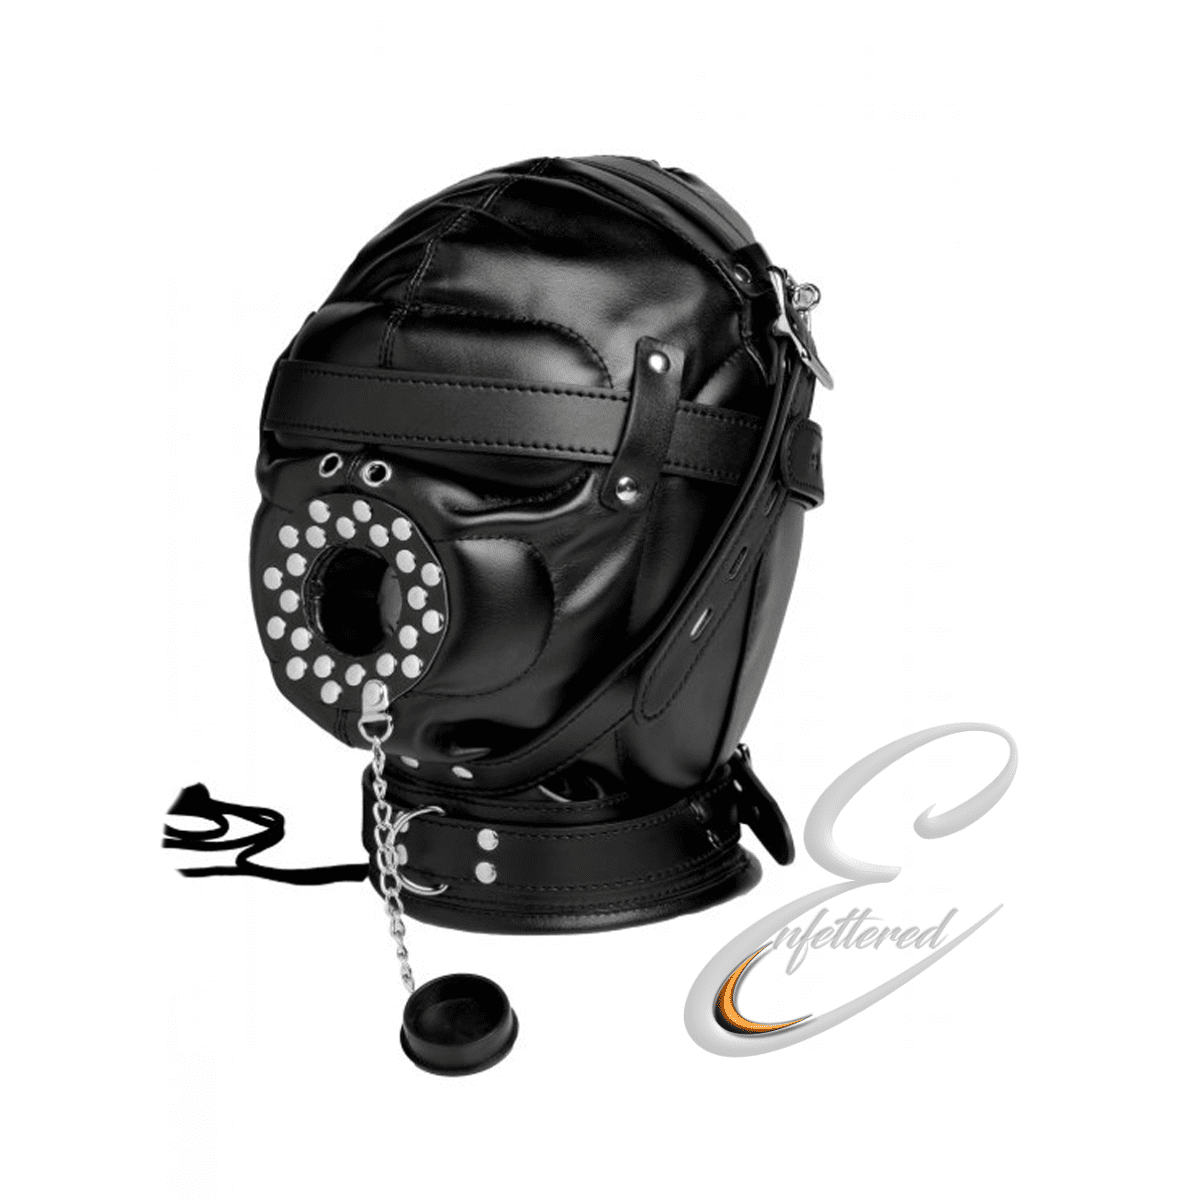 Enfettered Leather Deprivation Hood with Open Mouth Gag